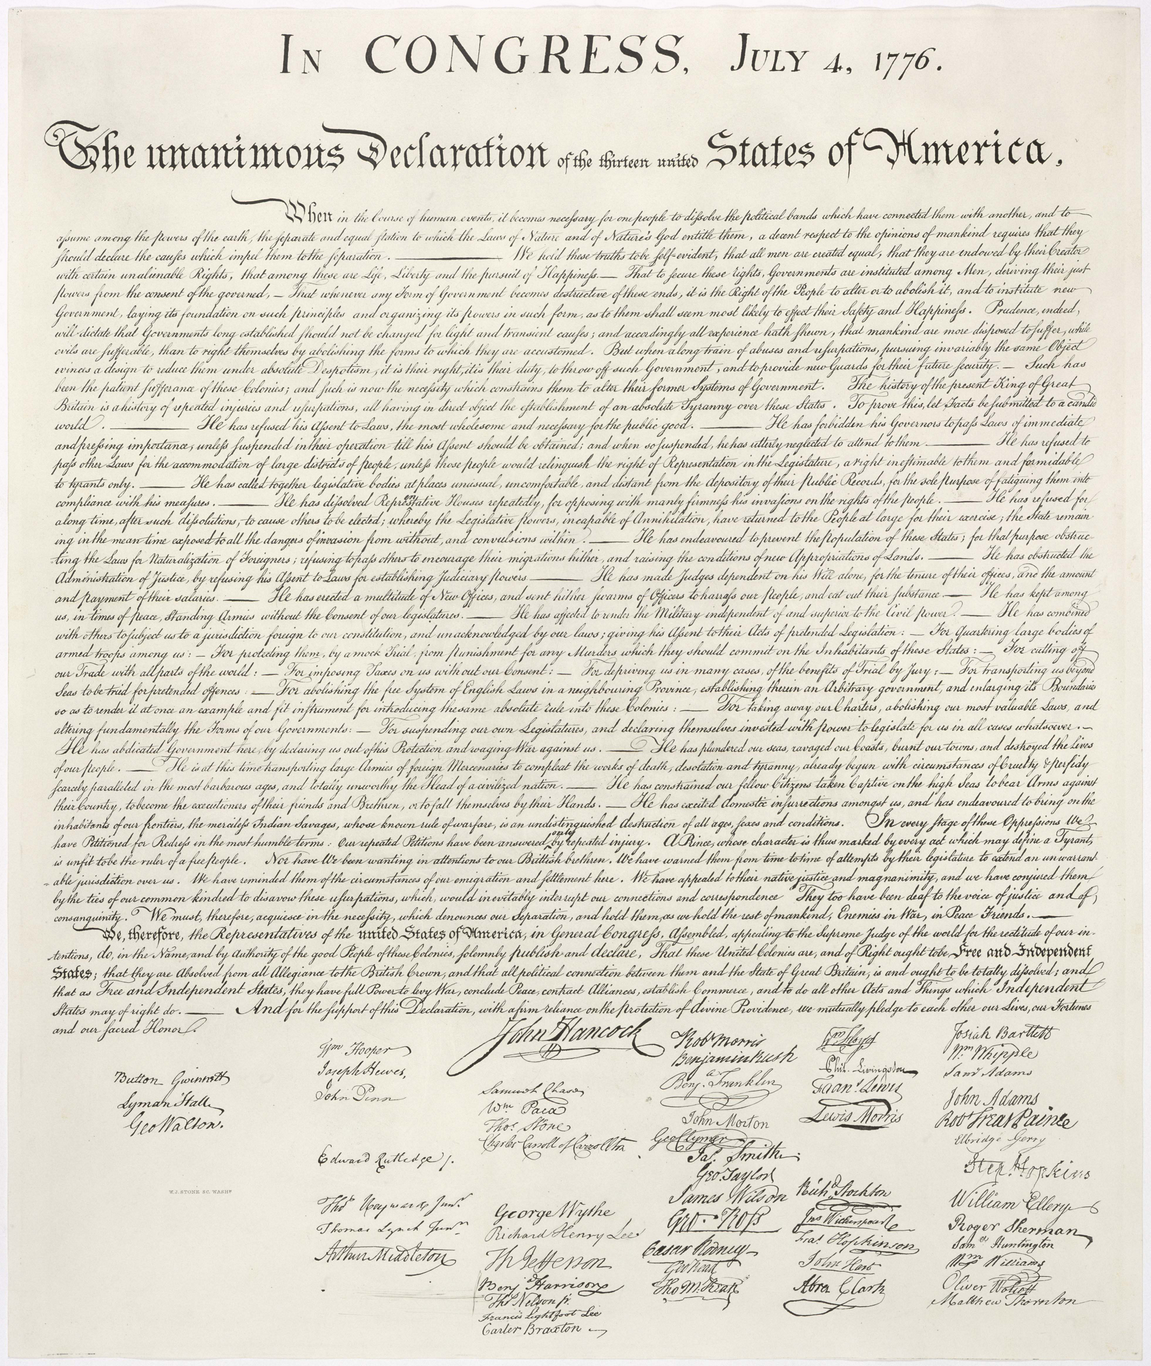 United States Declaration of Independence 4th July 1776. Wikimedia Commons